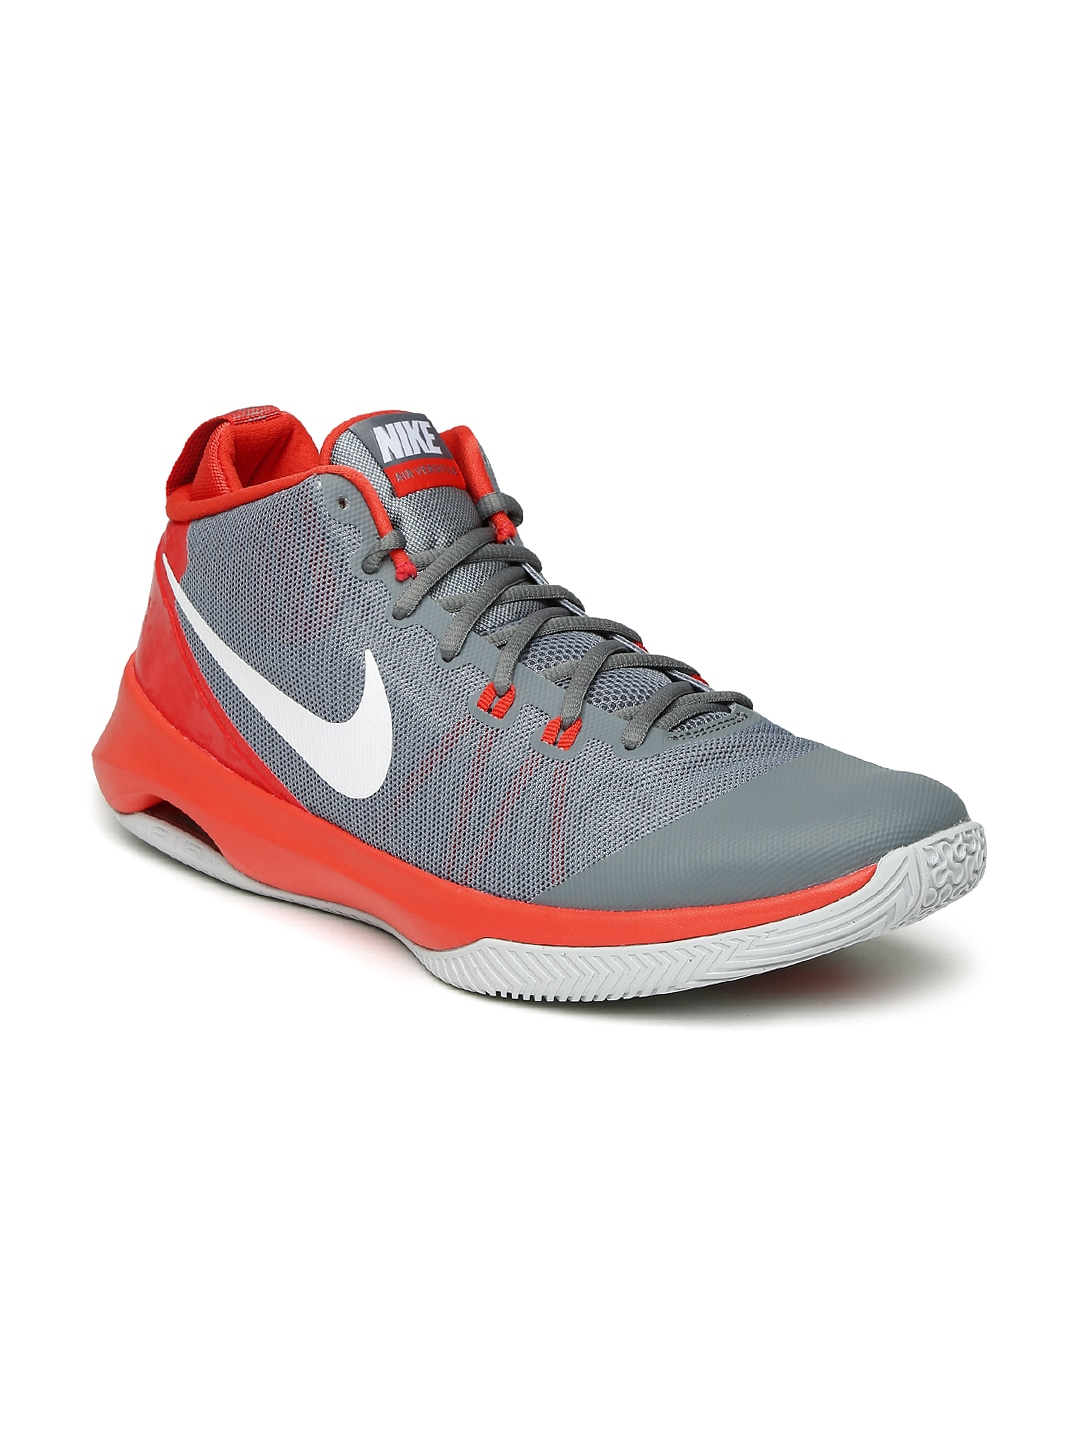 Basketball Shoes | Buy Basketball Shoes for Men & Women Online in ...